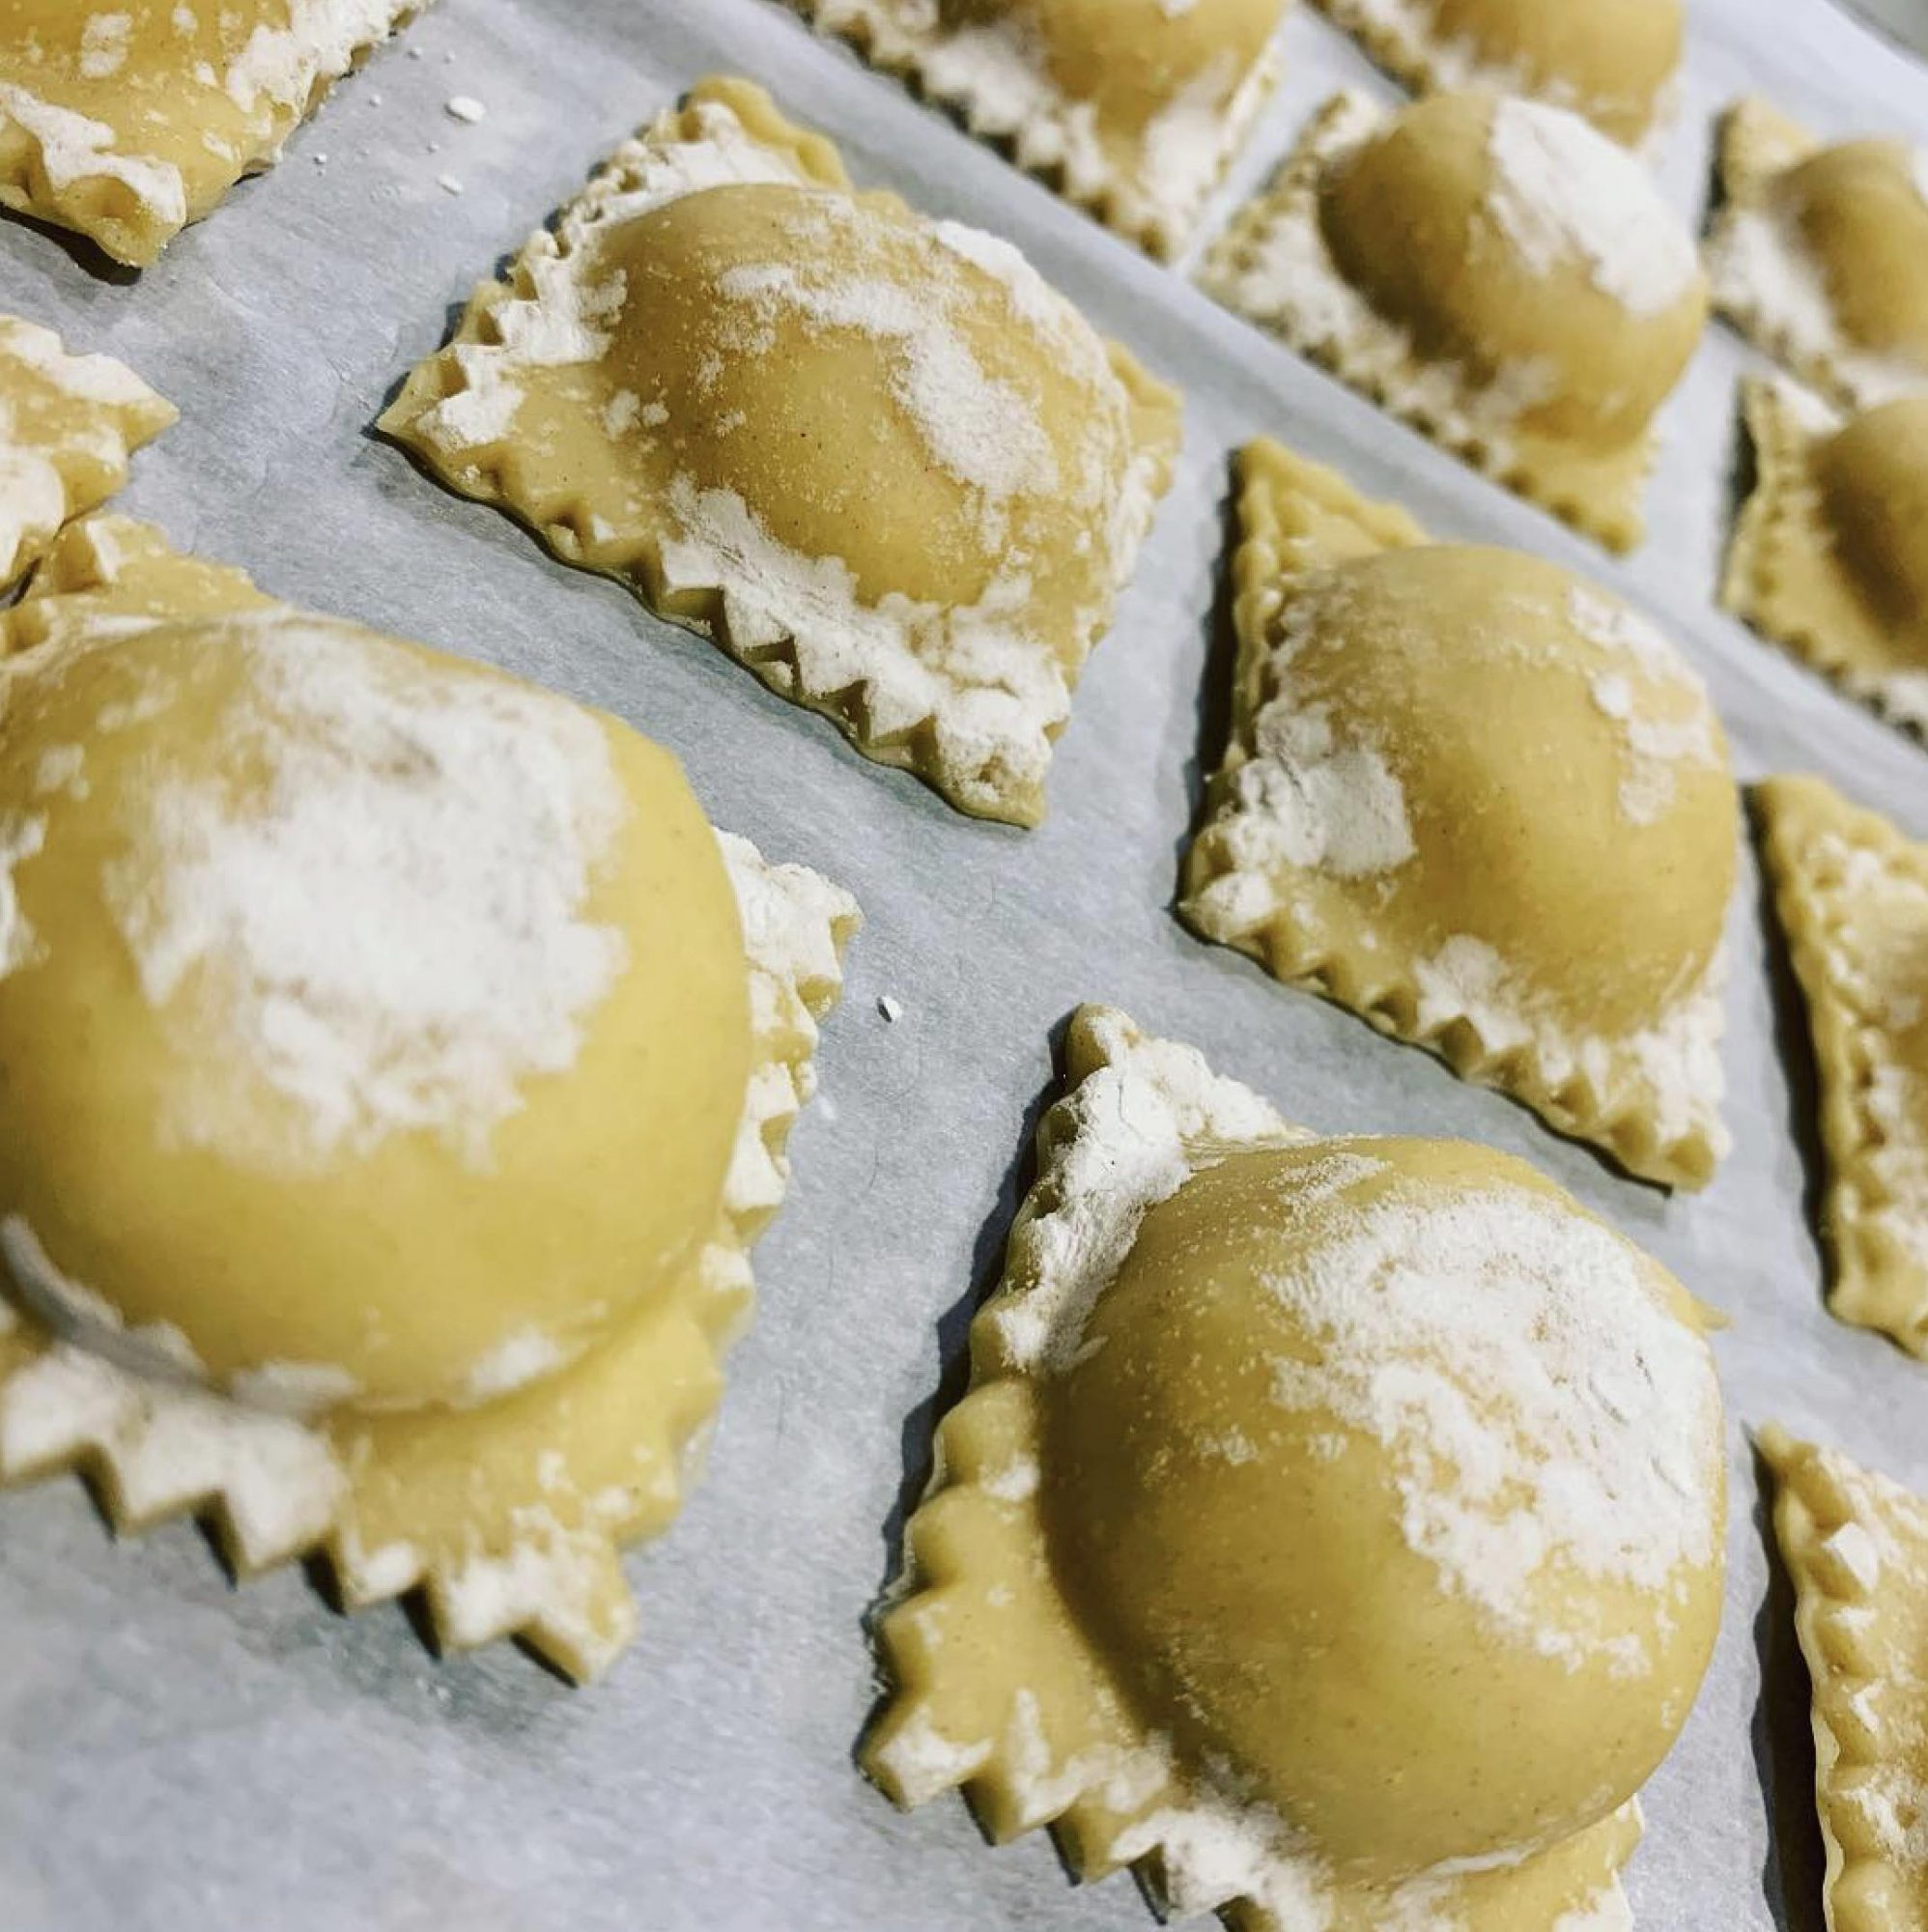 Making your own ravioli pasta from scratch does take time, but this recipe is well worth it. The filling is made with ricotta, cream cheese, mozzarella, and provolone. Serve with marinara sauce and top with a rich pesto cream for a restaurant-worthy appetizer.